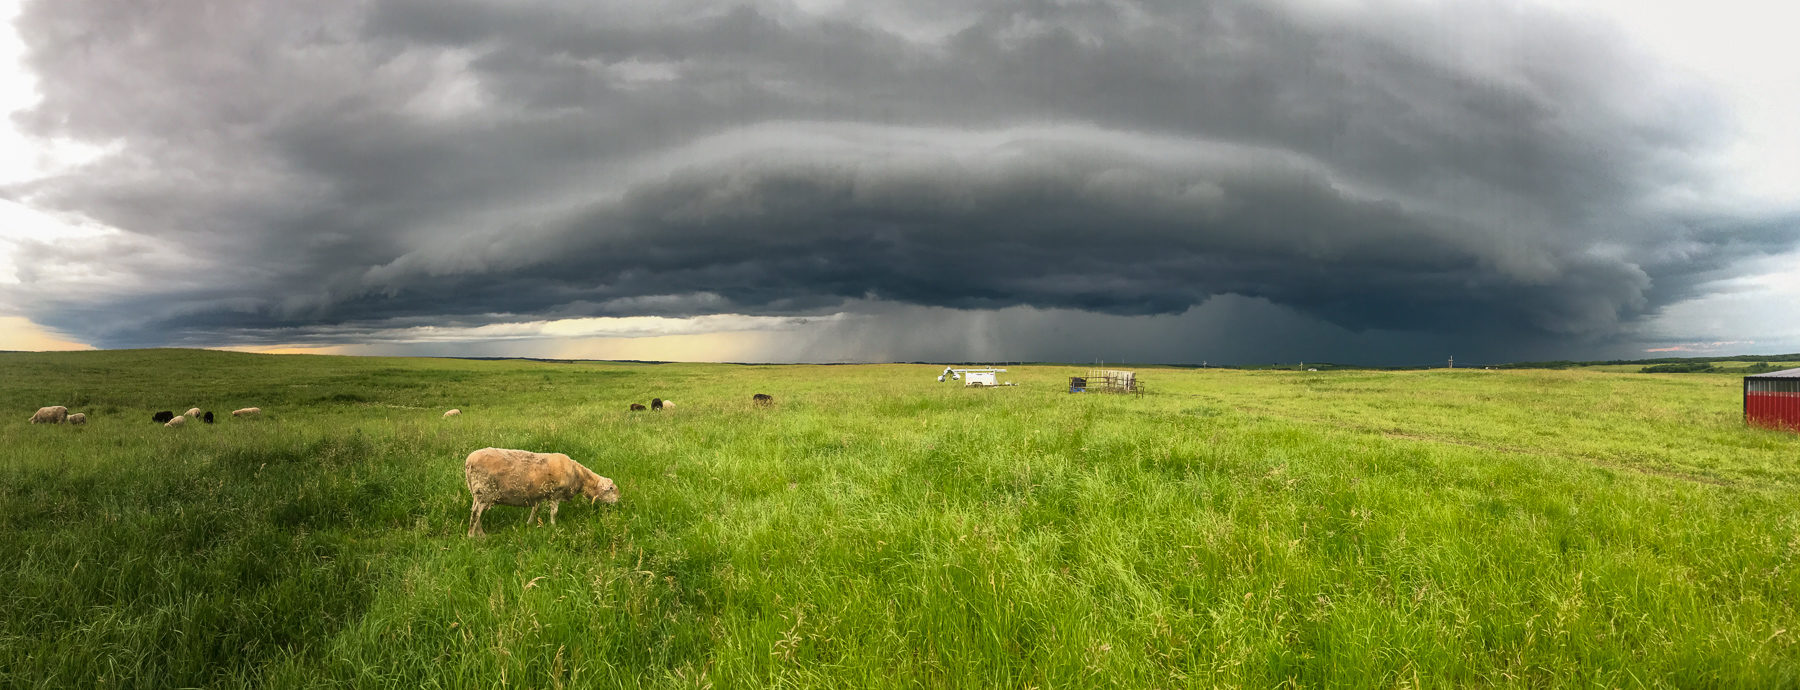 The good thing about the flat prairie is that you can always see ahead of time whether a storm is approaching from a distance.